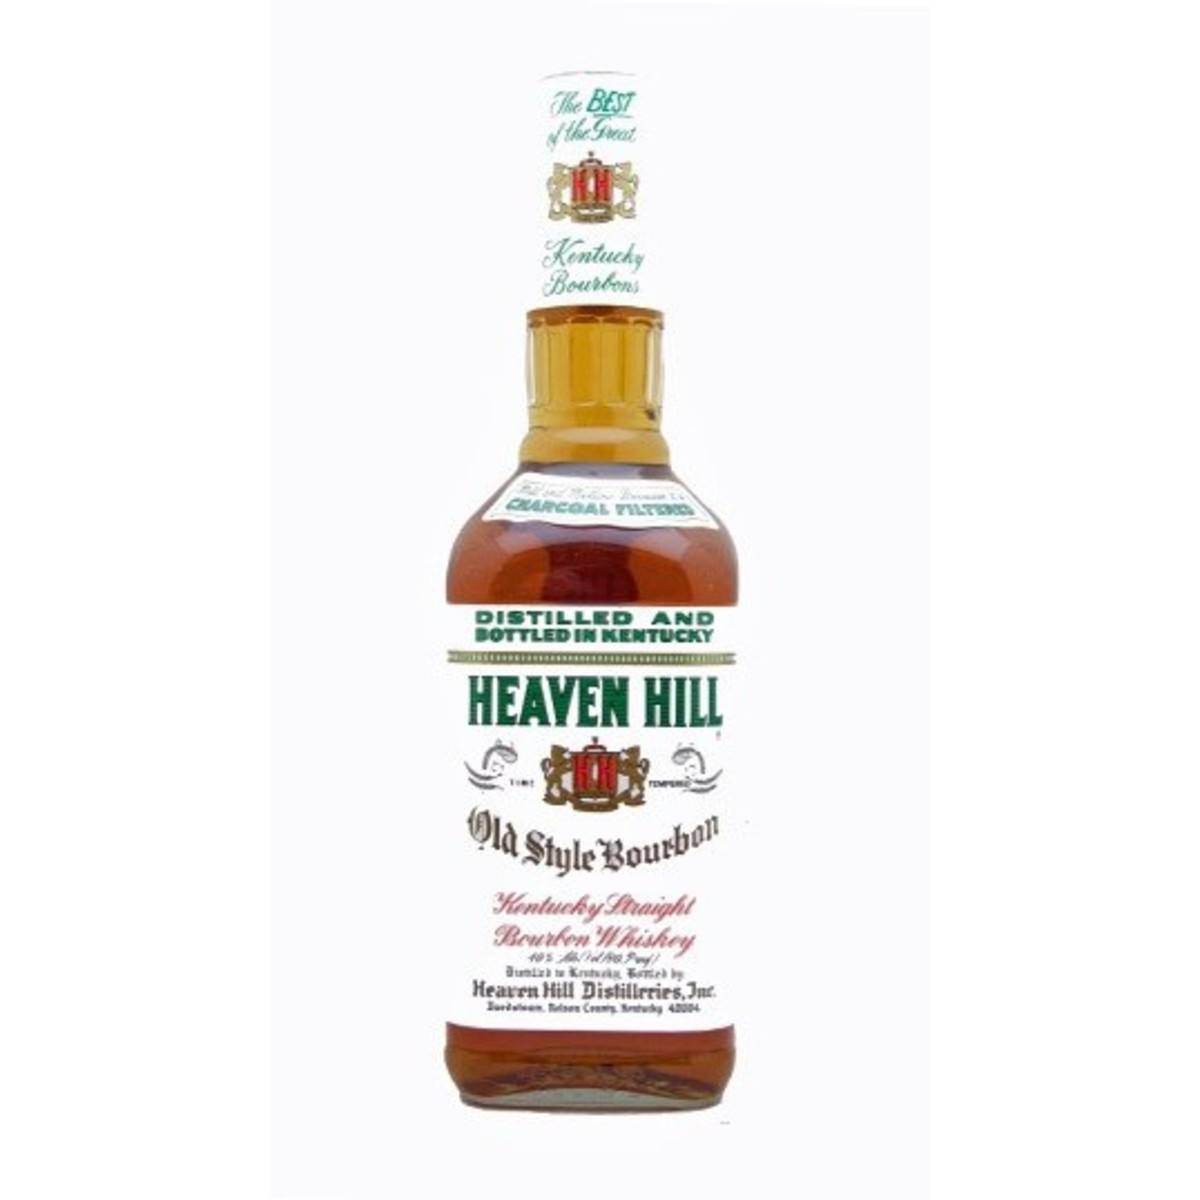 Heaven Hill White Label. Aged for six years, this bourbon offers excellent value for money and is a superior drink for its price range.